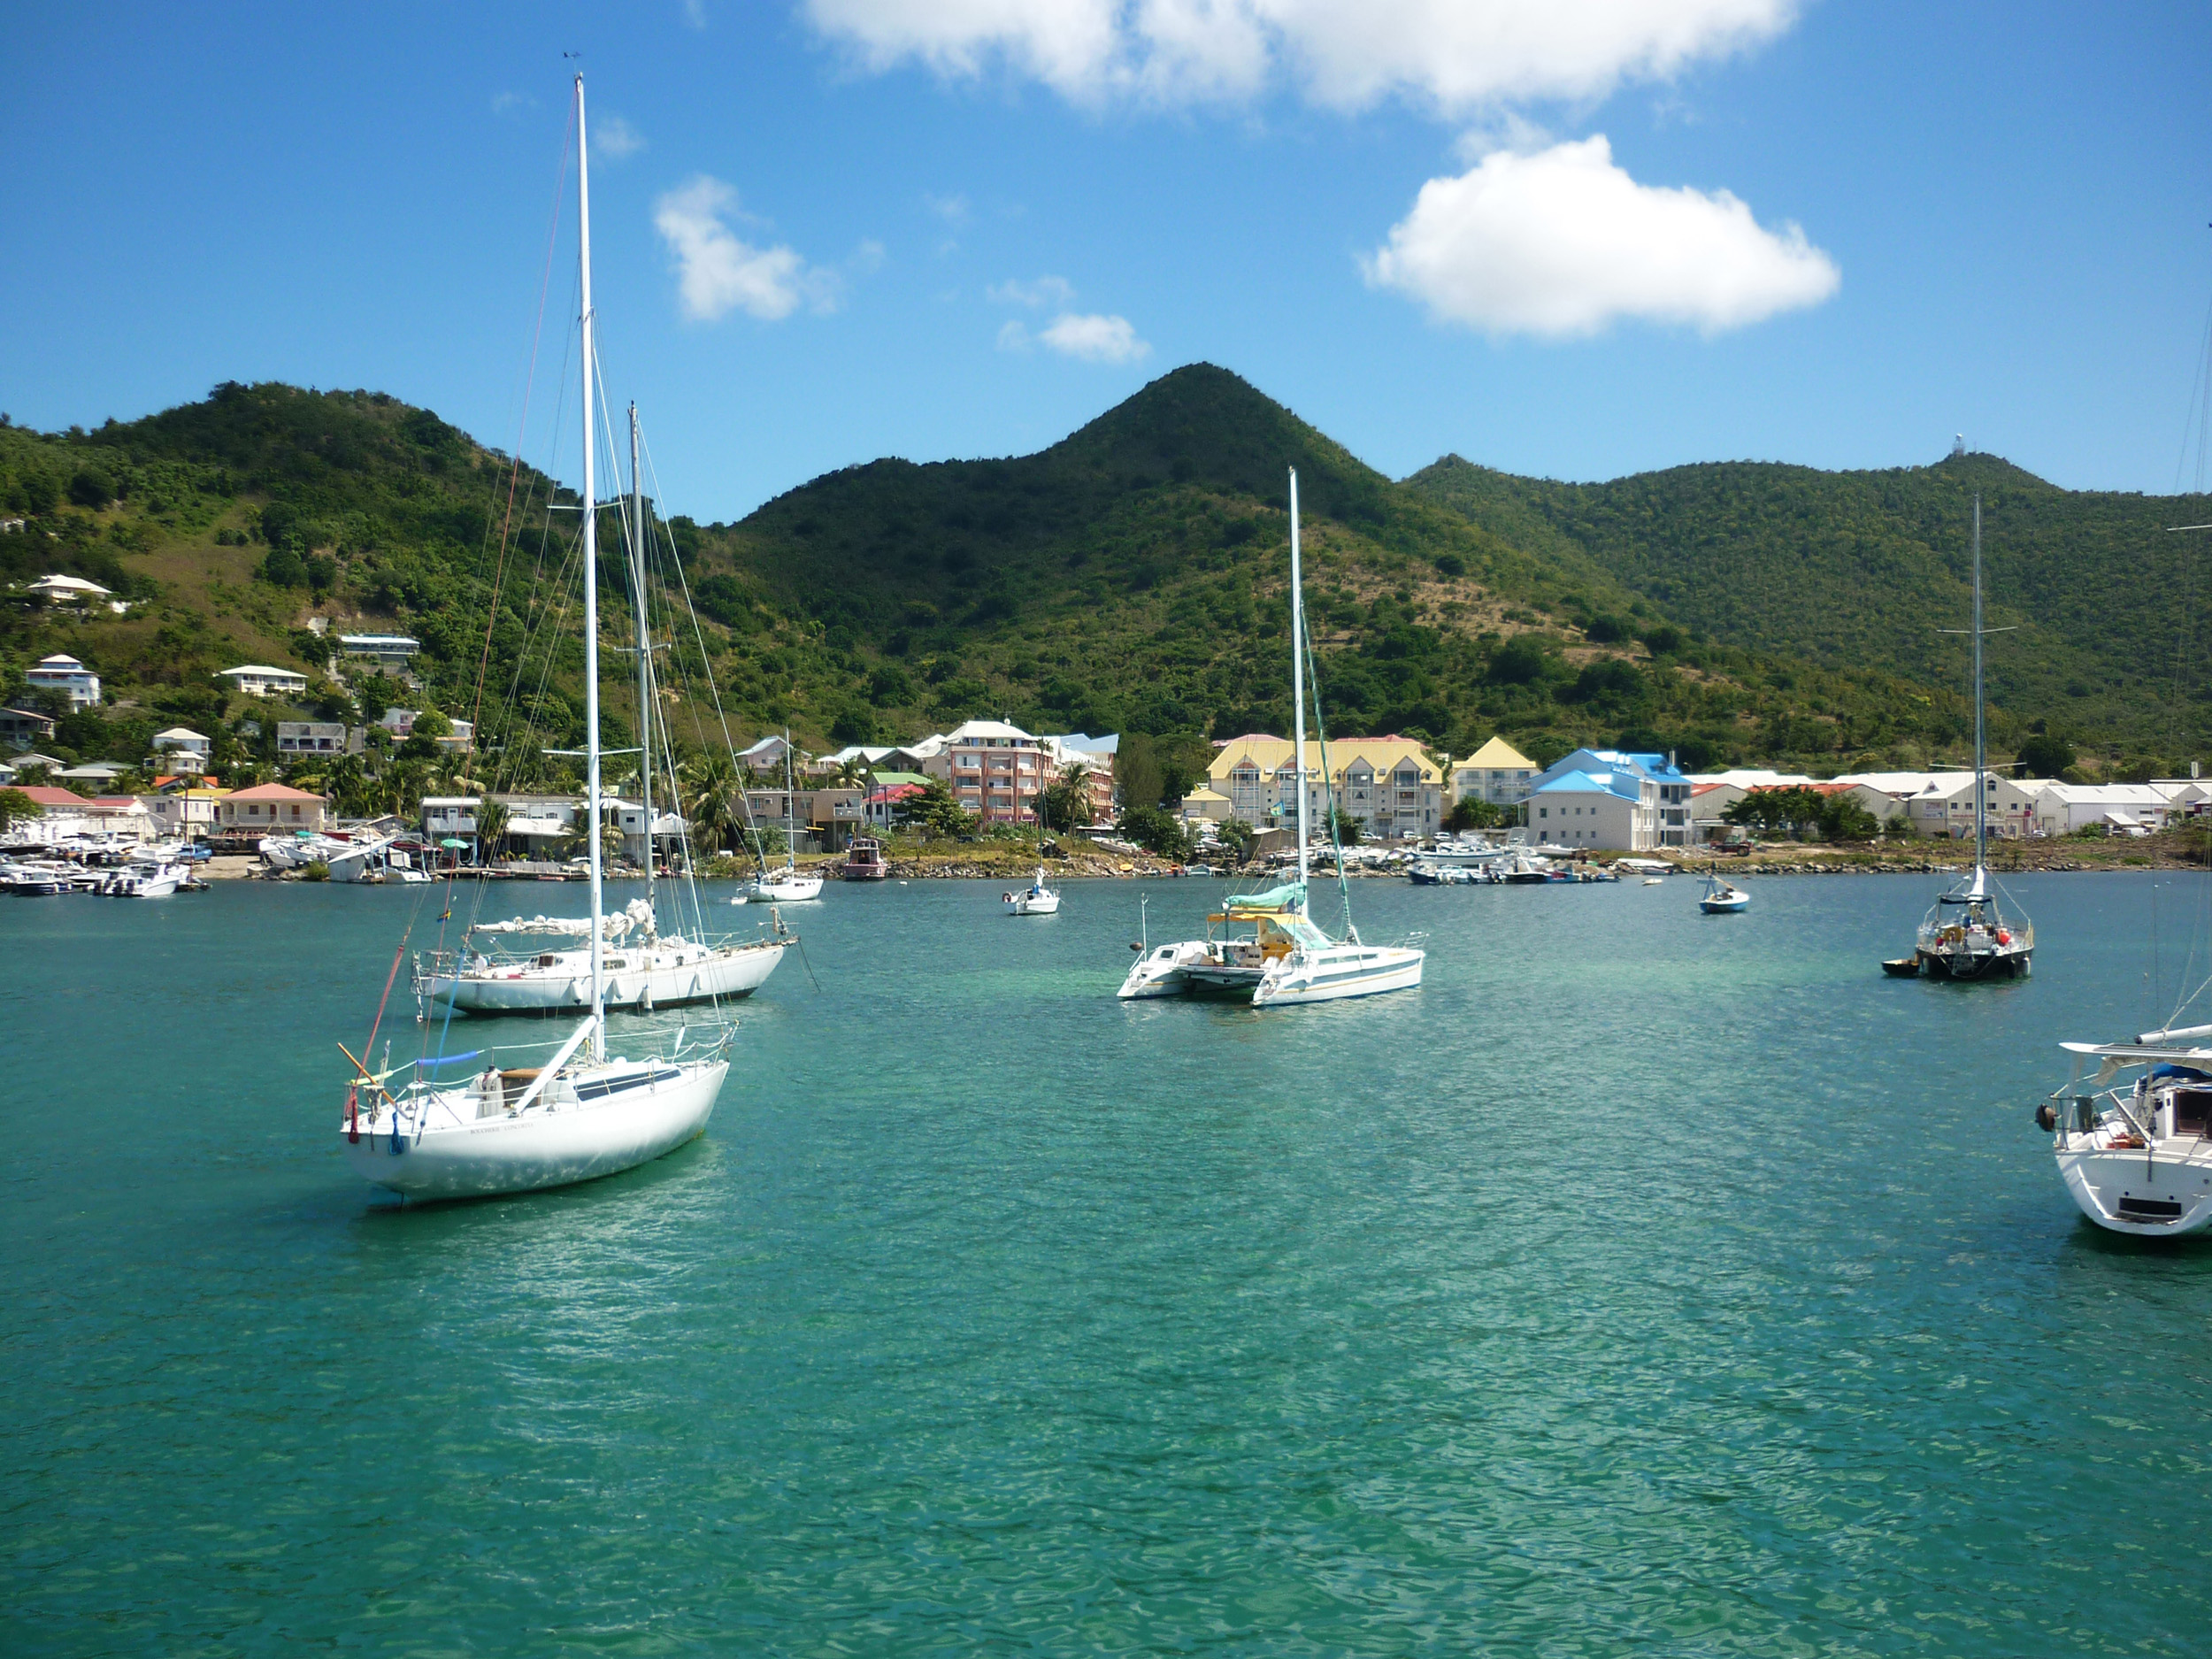 yachts anchored of the island of st martin